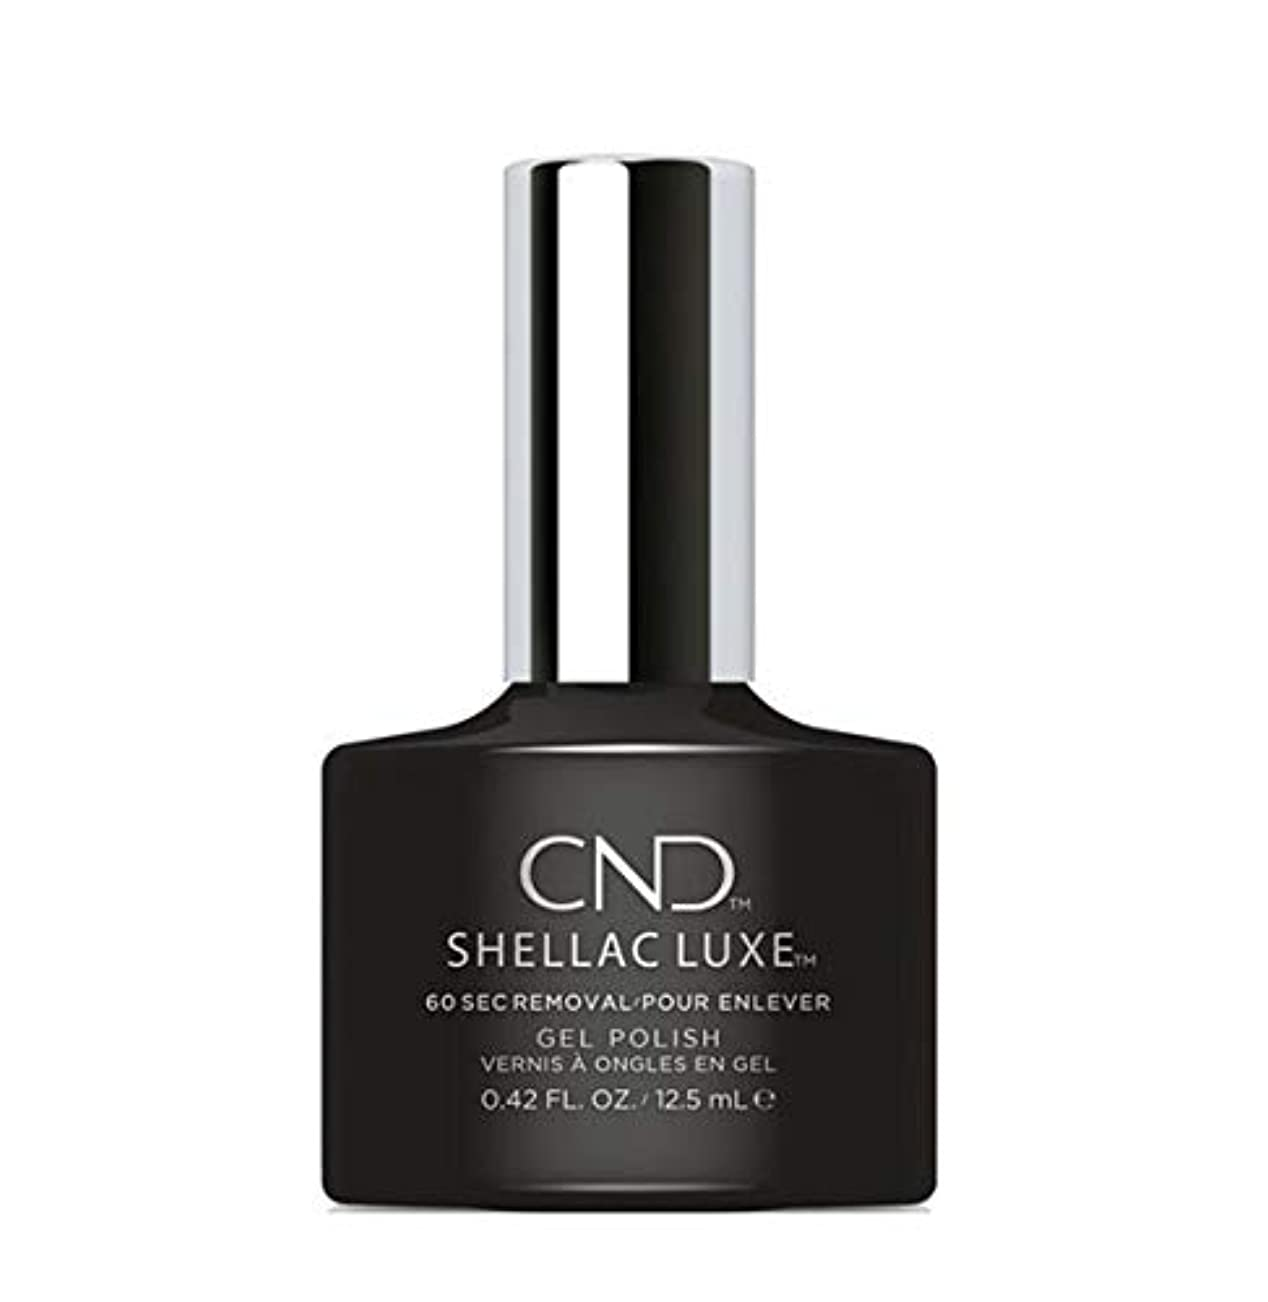 列車輪郭脅威CND Shellac Luxe - Black Pool - 12.5 ml / 0.42 oz